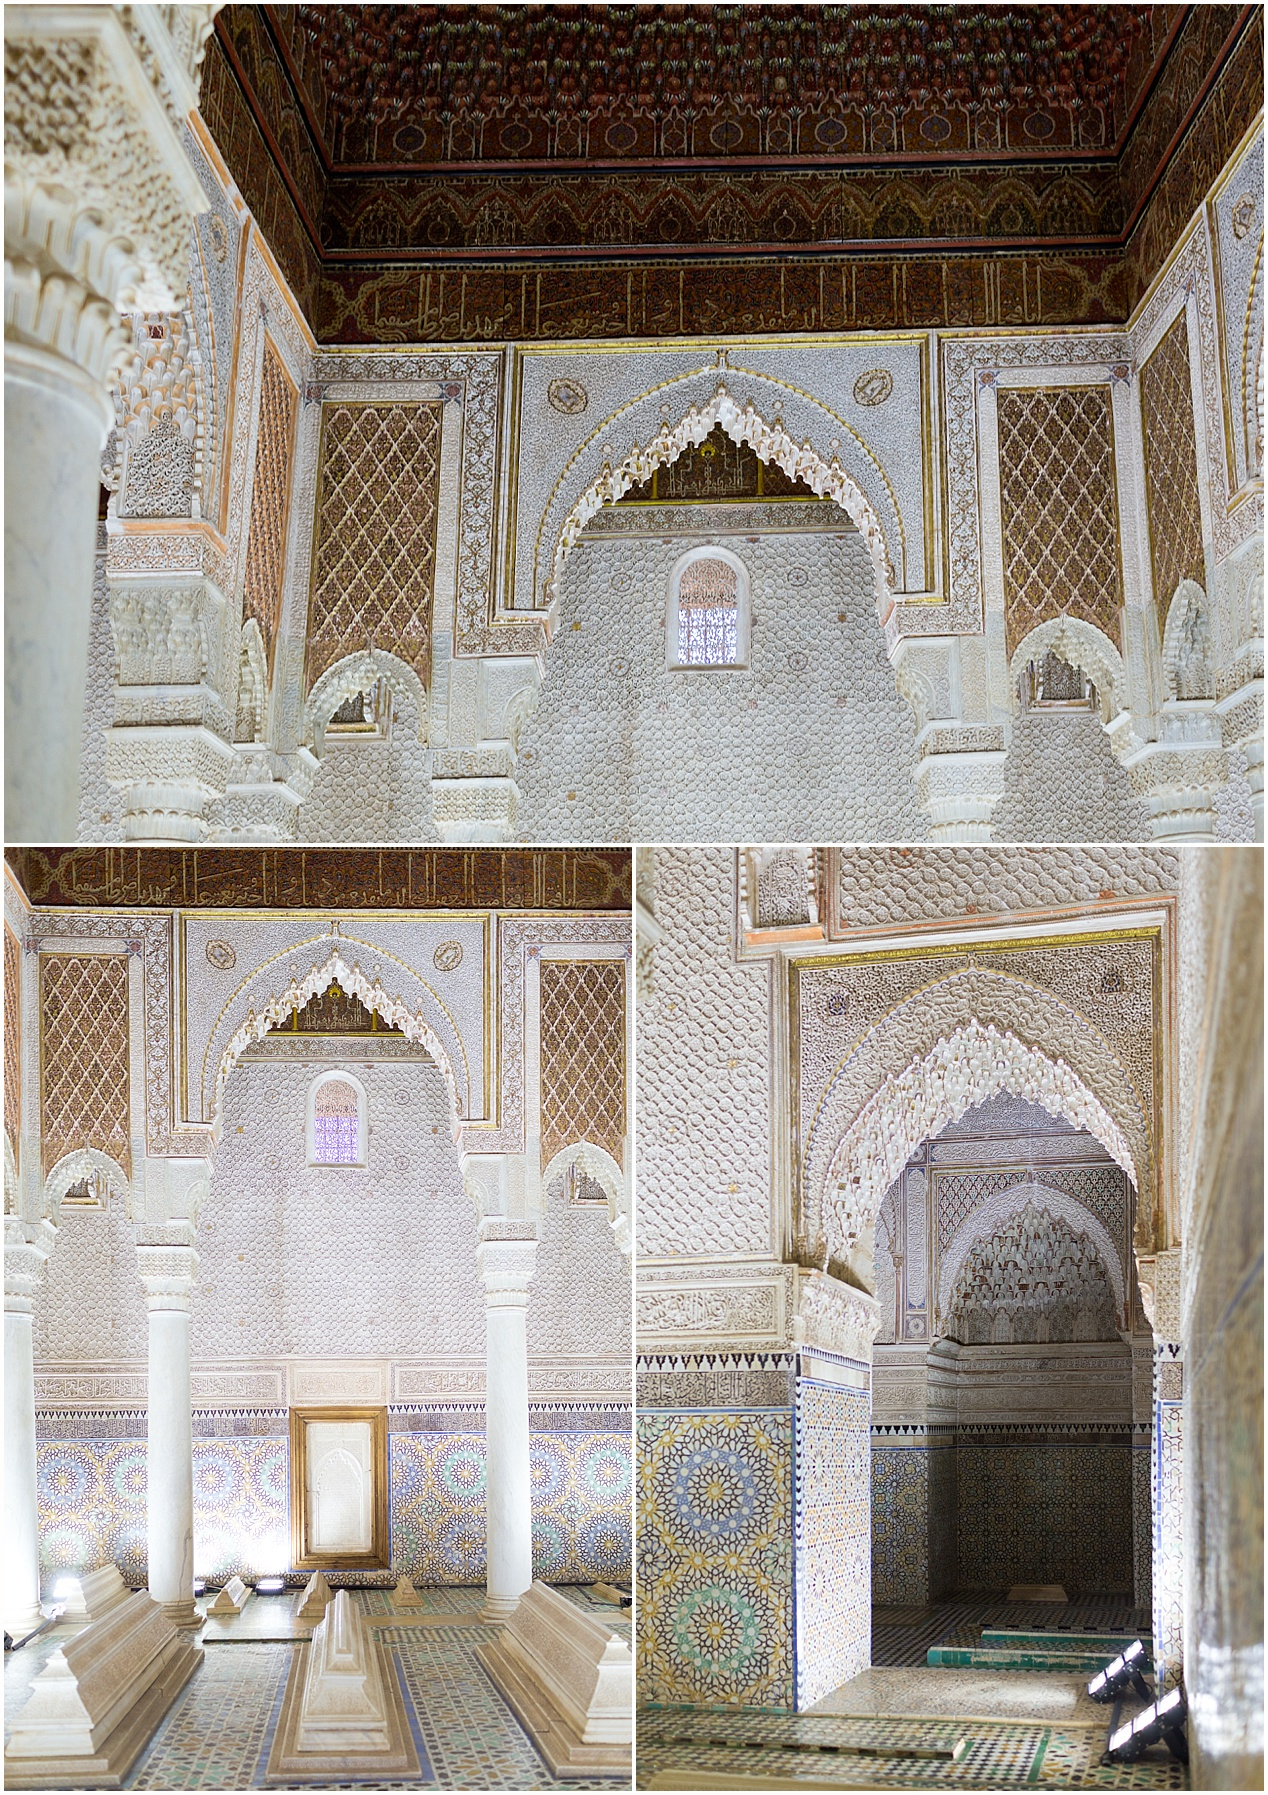 Saadian tombs in Marrakech - Morocco travel blog